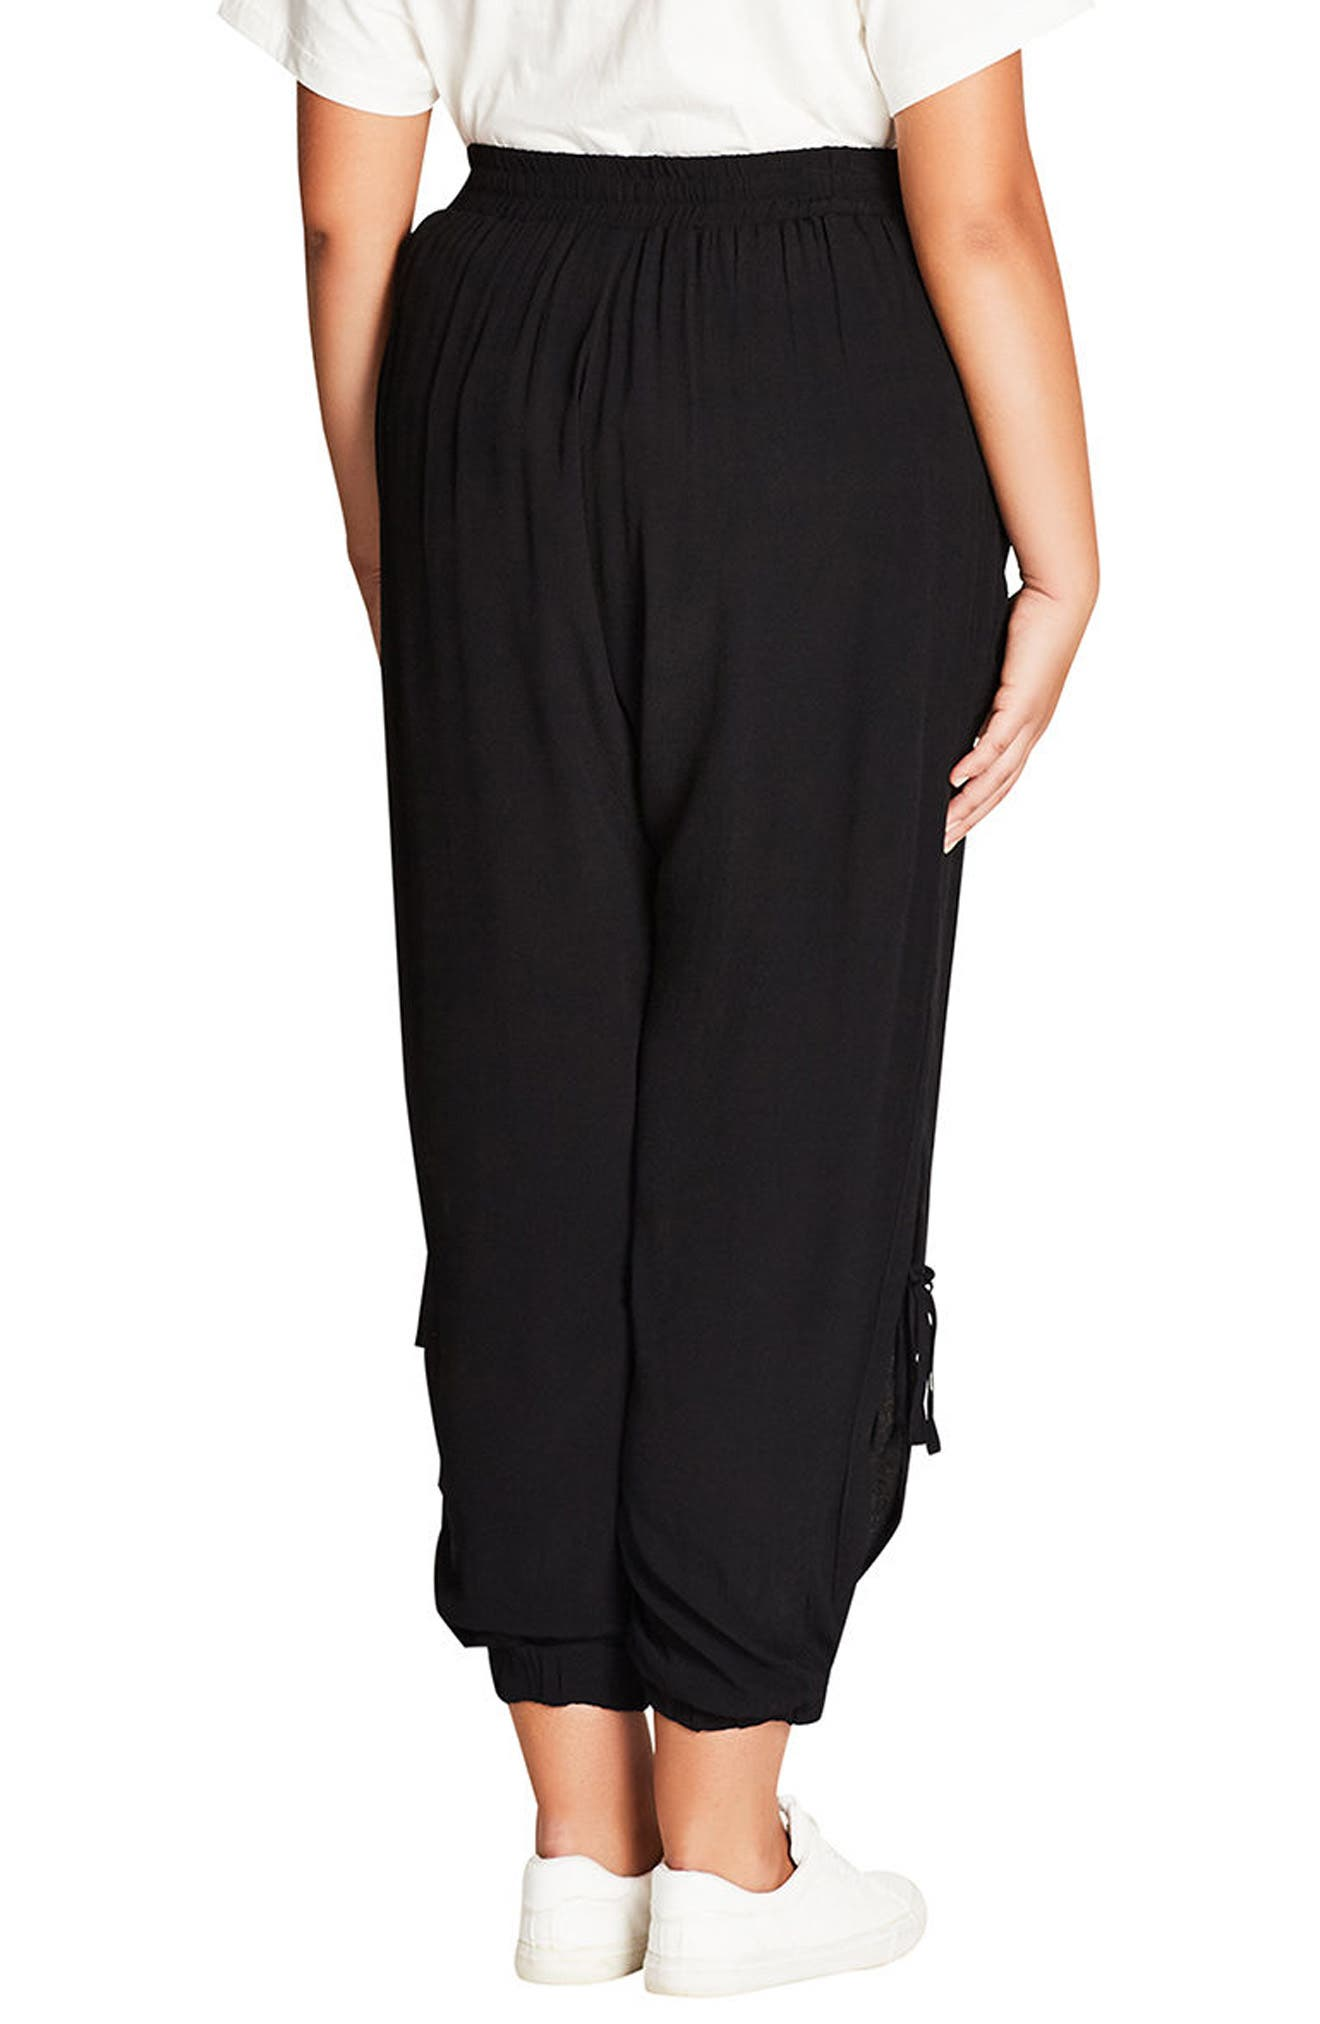 Alternate Image 2  - City Chic Side Tie Jogger Pants (Plus Size)